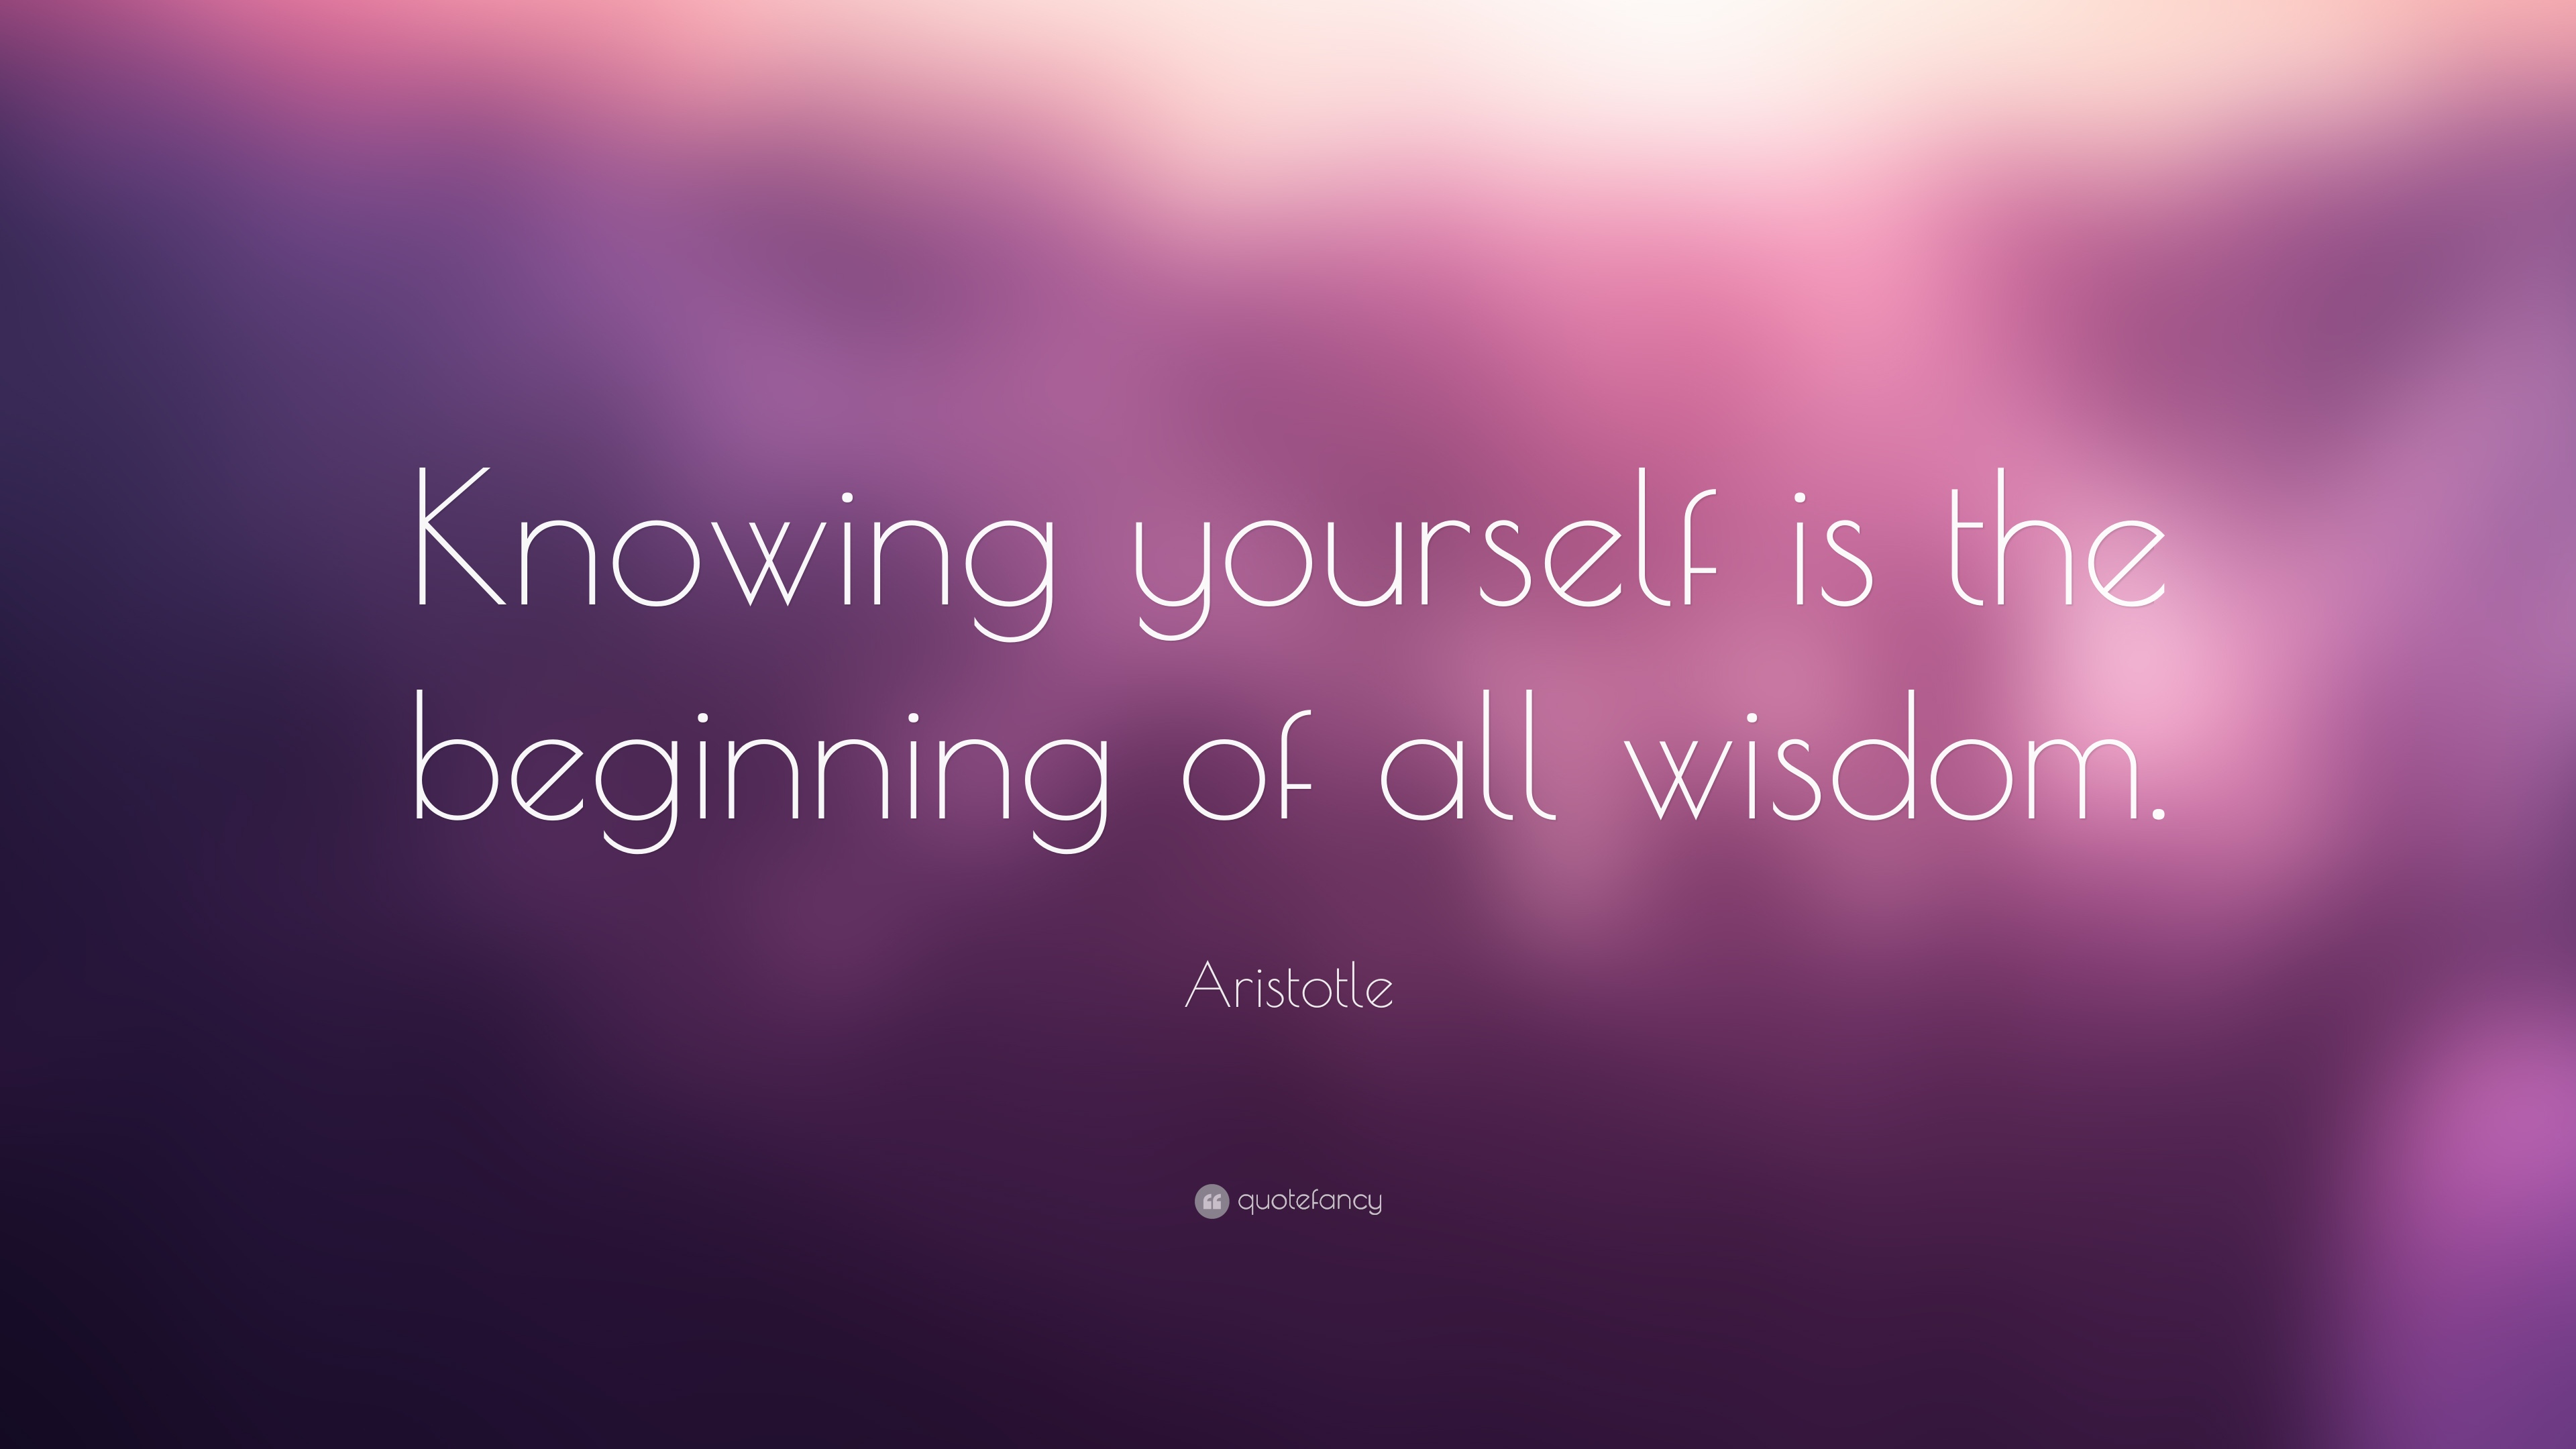 All the Beginning of Wisdom Is Knowing Yourself Quotes